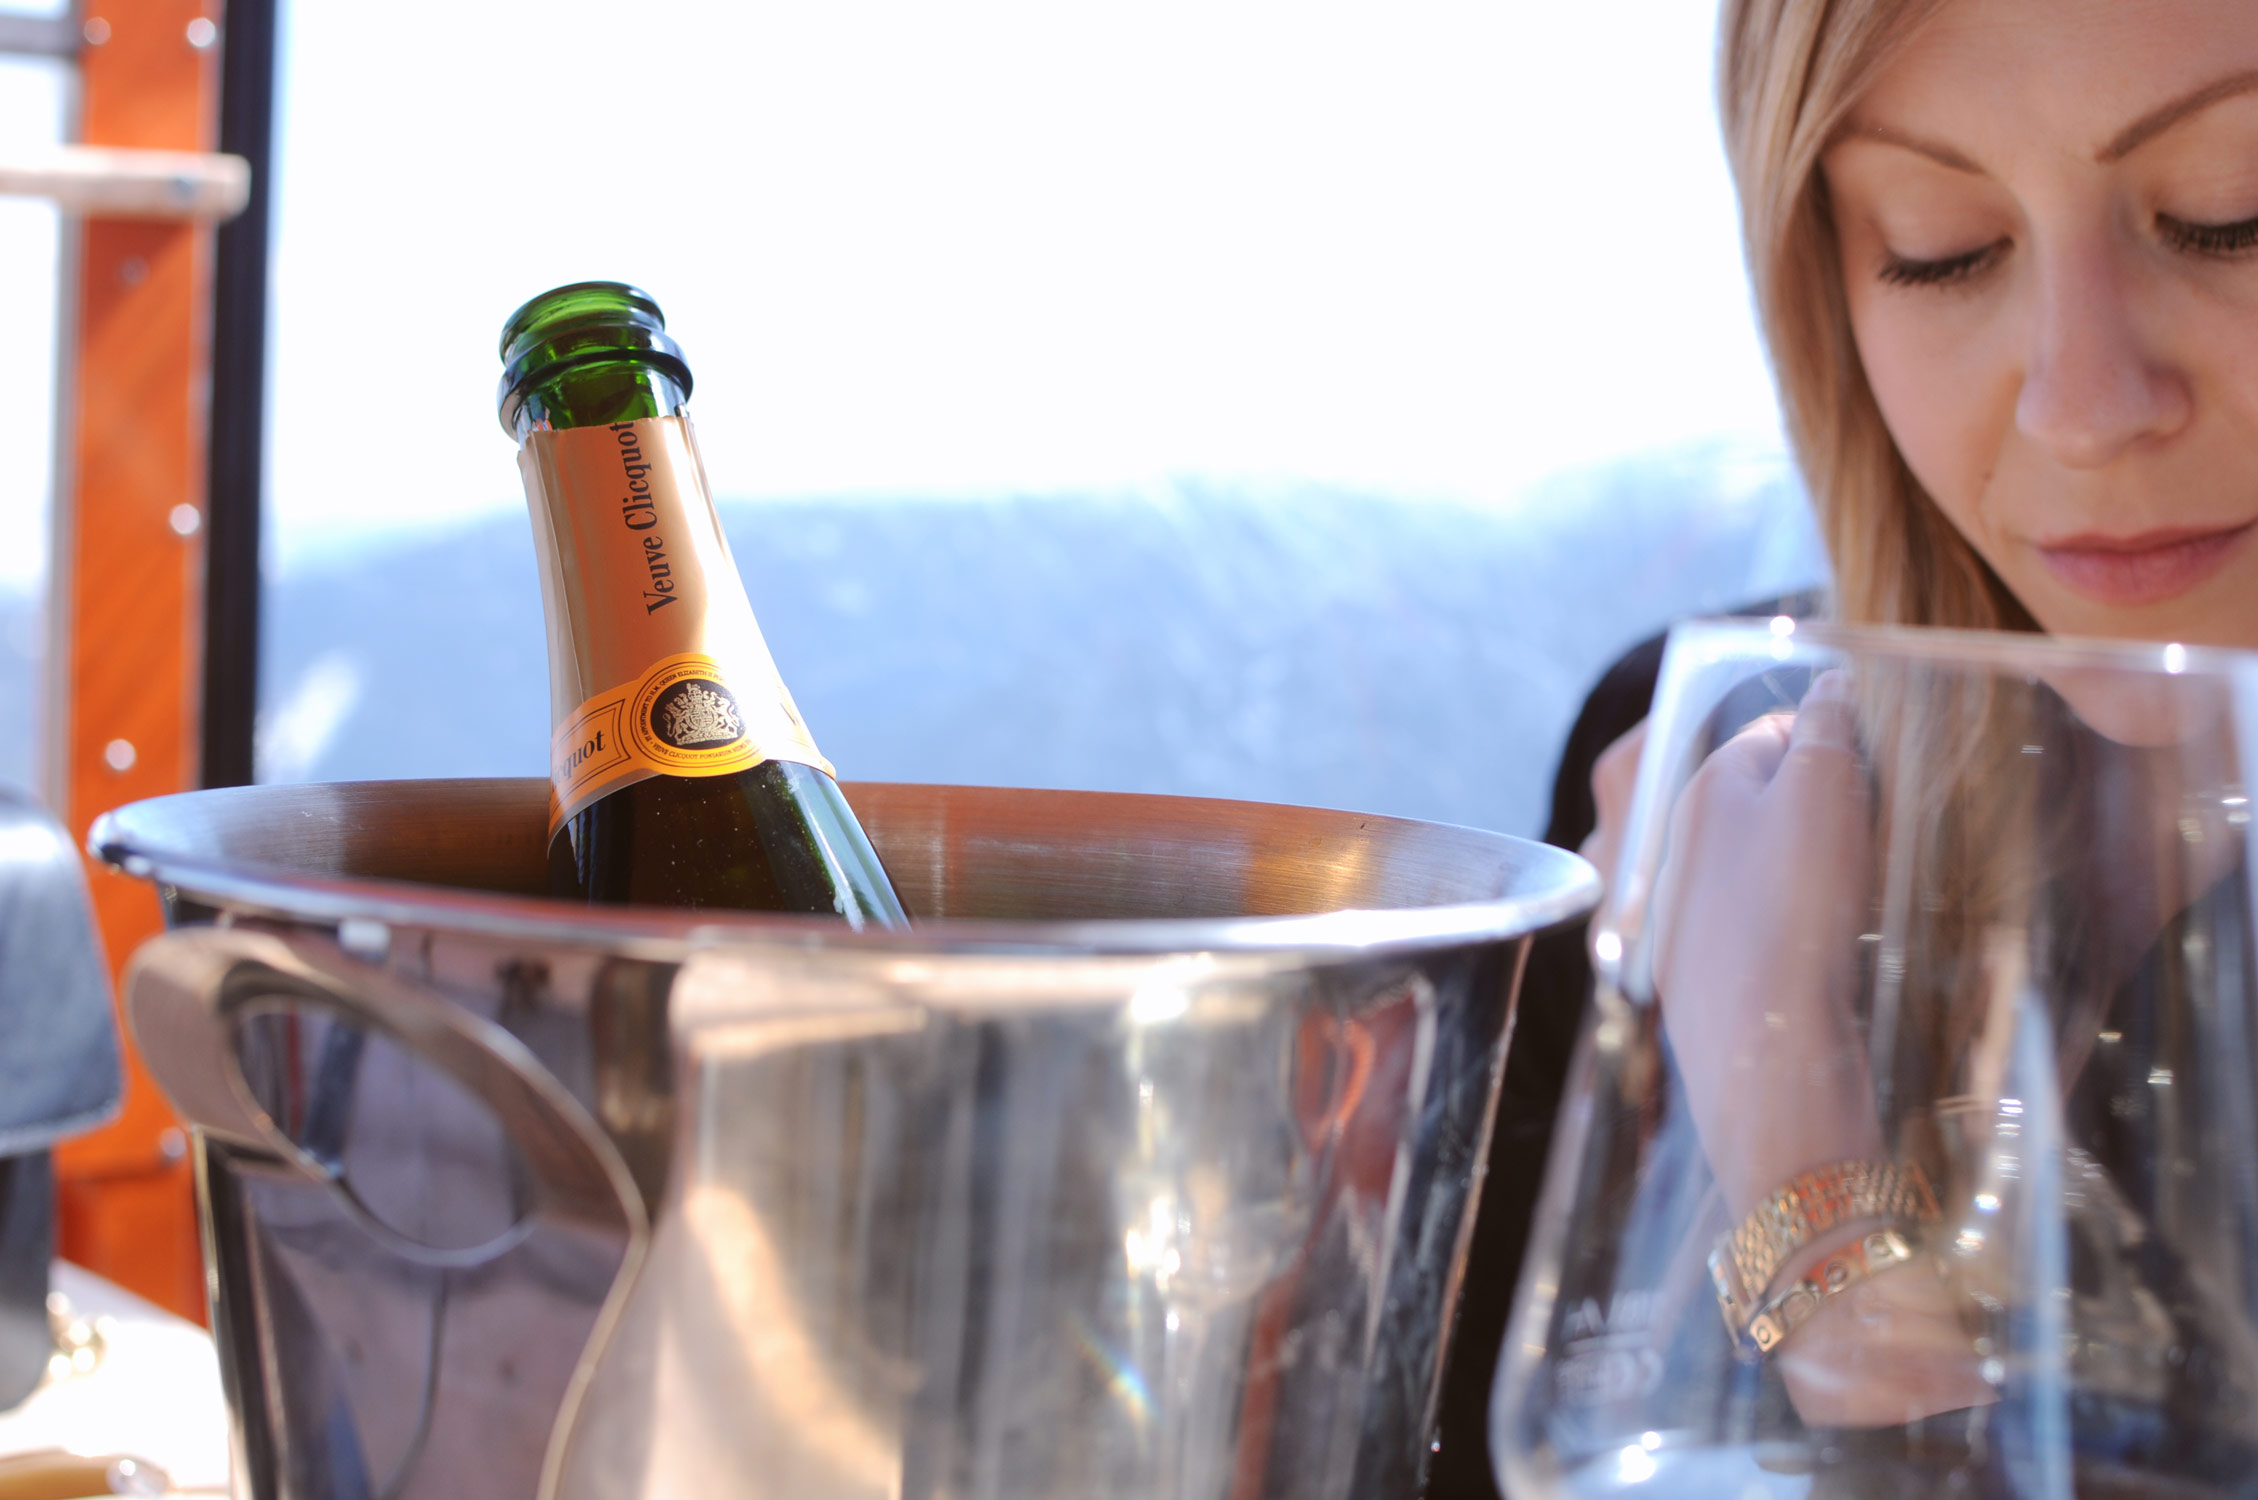 Veuve Clicquot, champagne, saalbach, austria, outfit of the day, fashion blogger austria